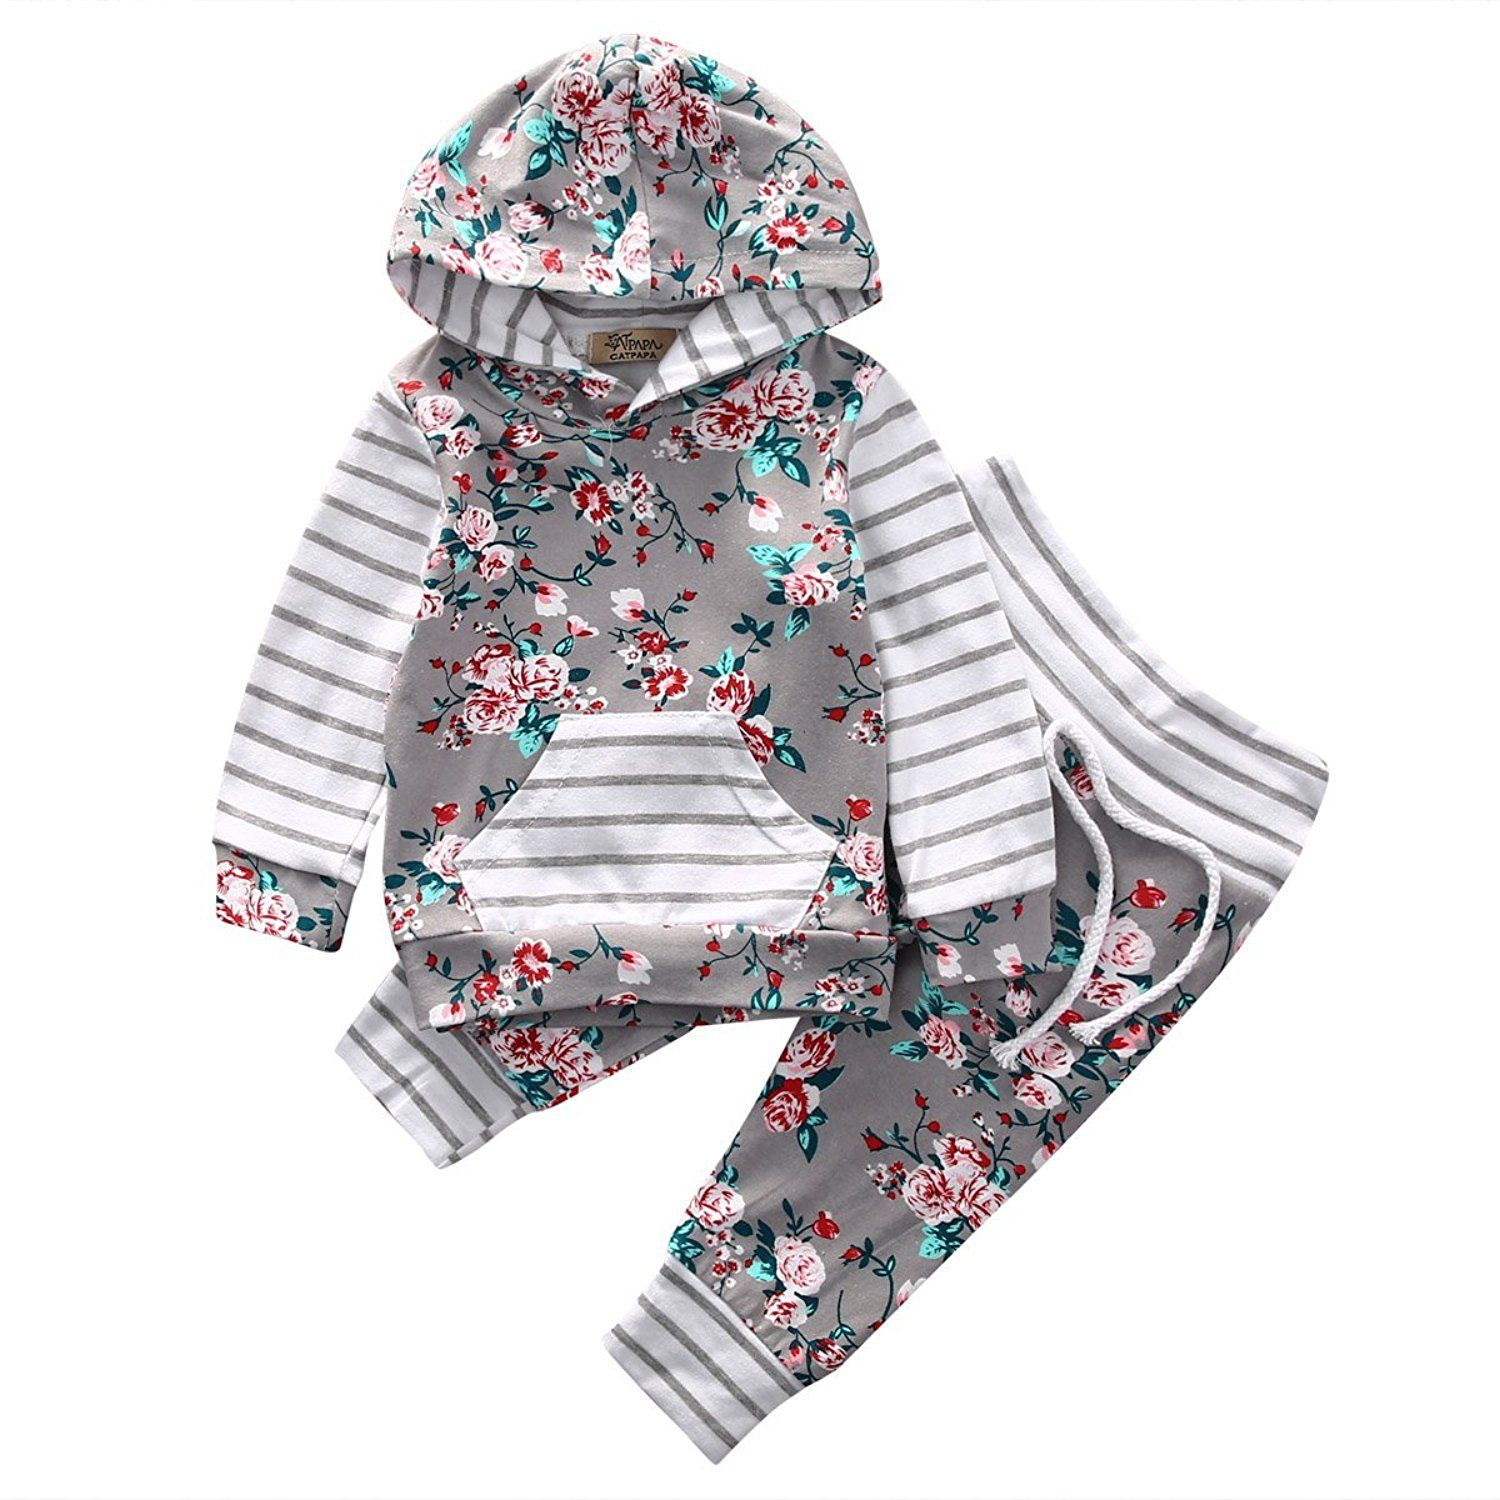 0df5c1d5f Amazon.com  Baby Girl 2pcs Set Outfit Flower Print Hoodies with ...